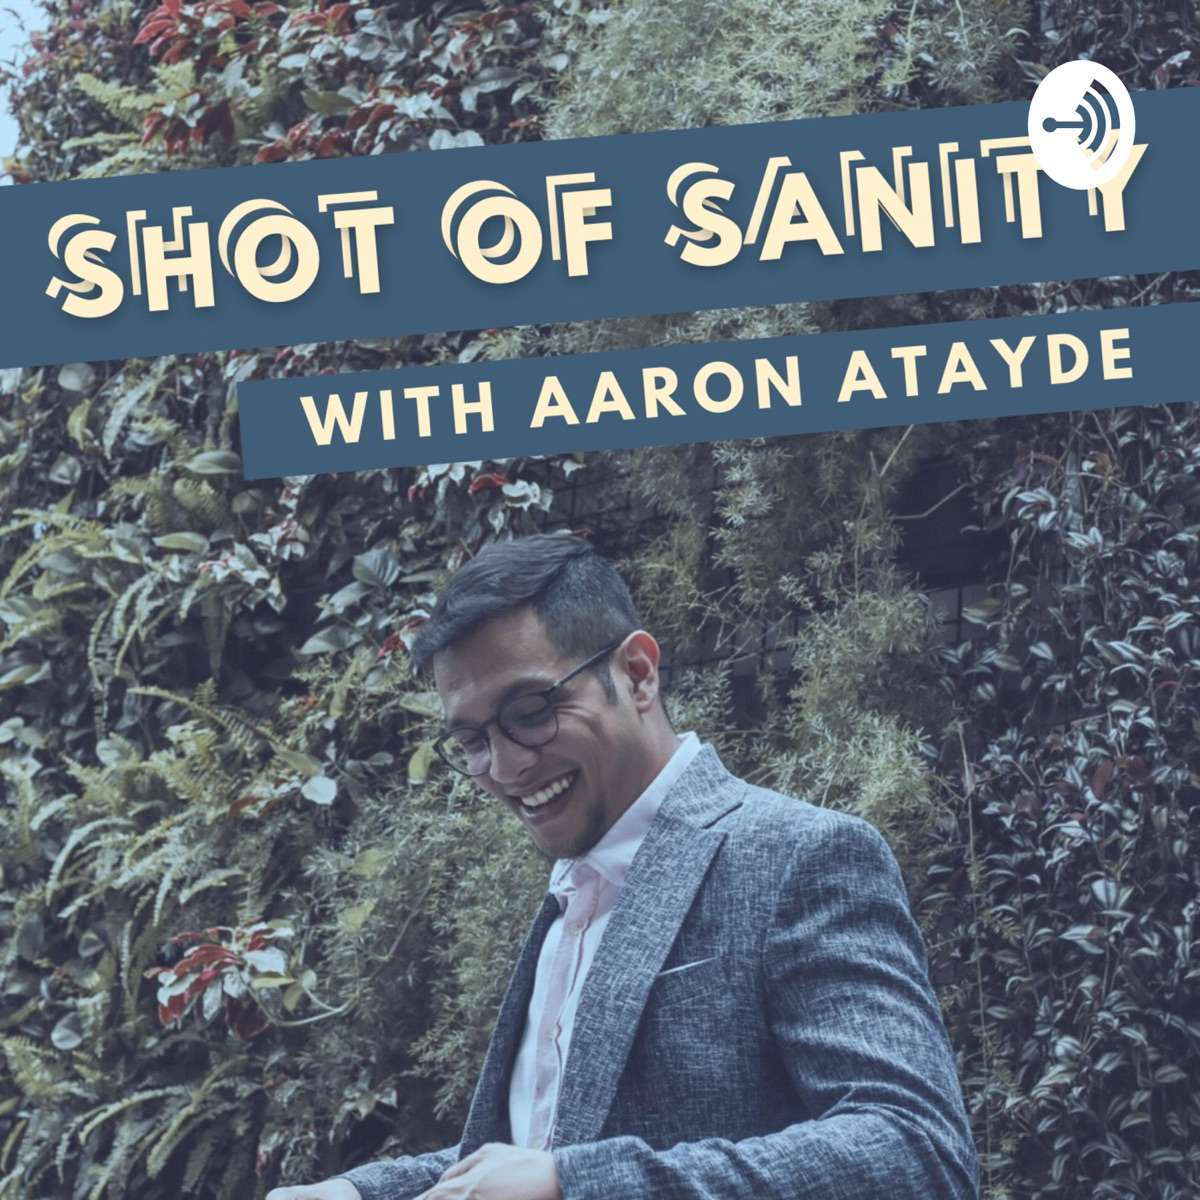 Shot of Sanity with Aaron Atayde